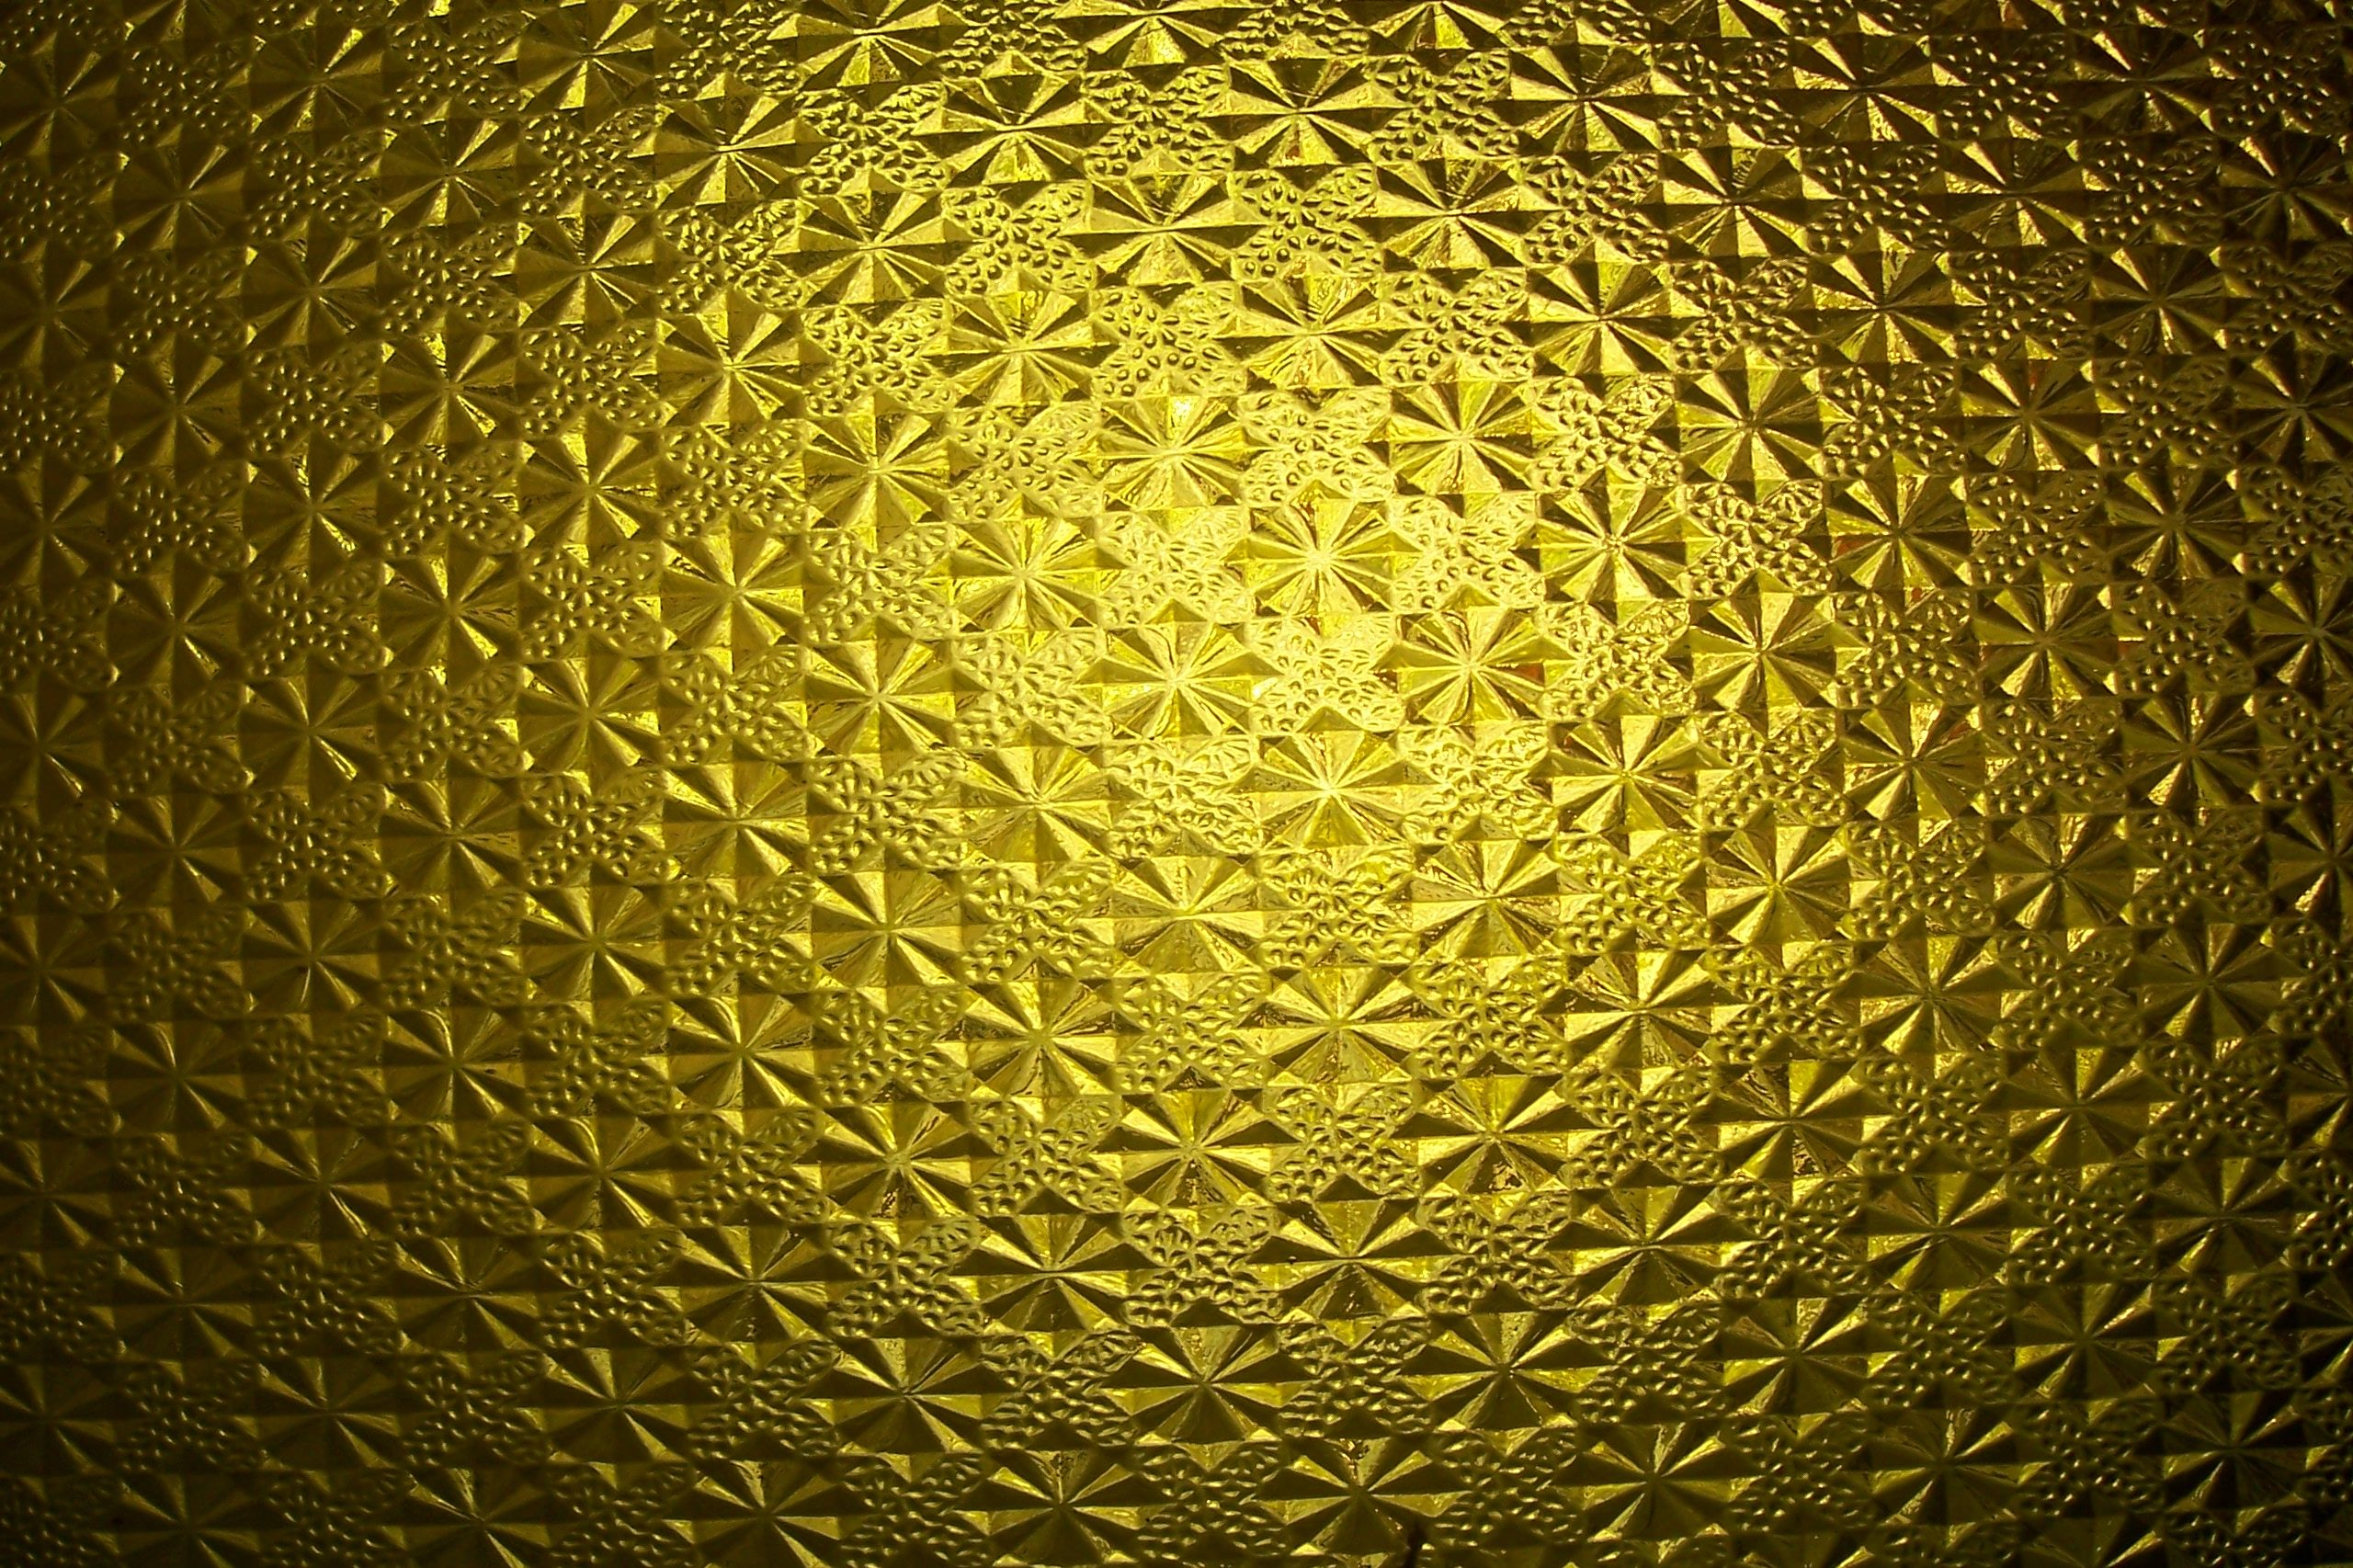 Patterns gold textures high quality in hd wallpaper - Gold desktop background ...